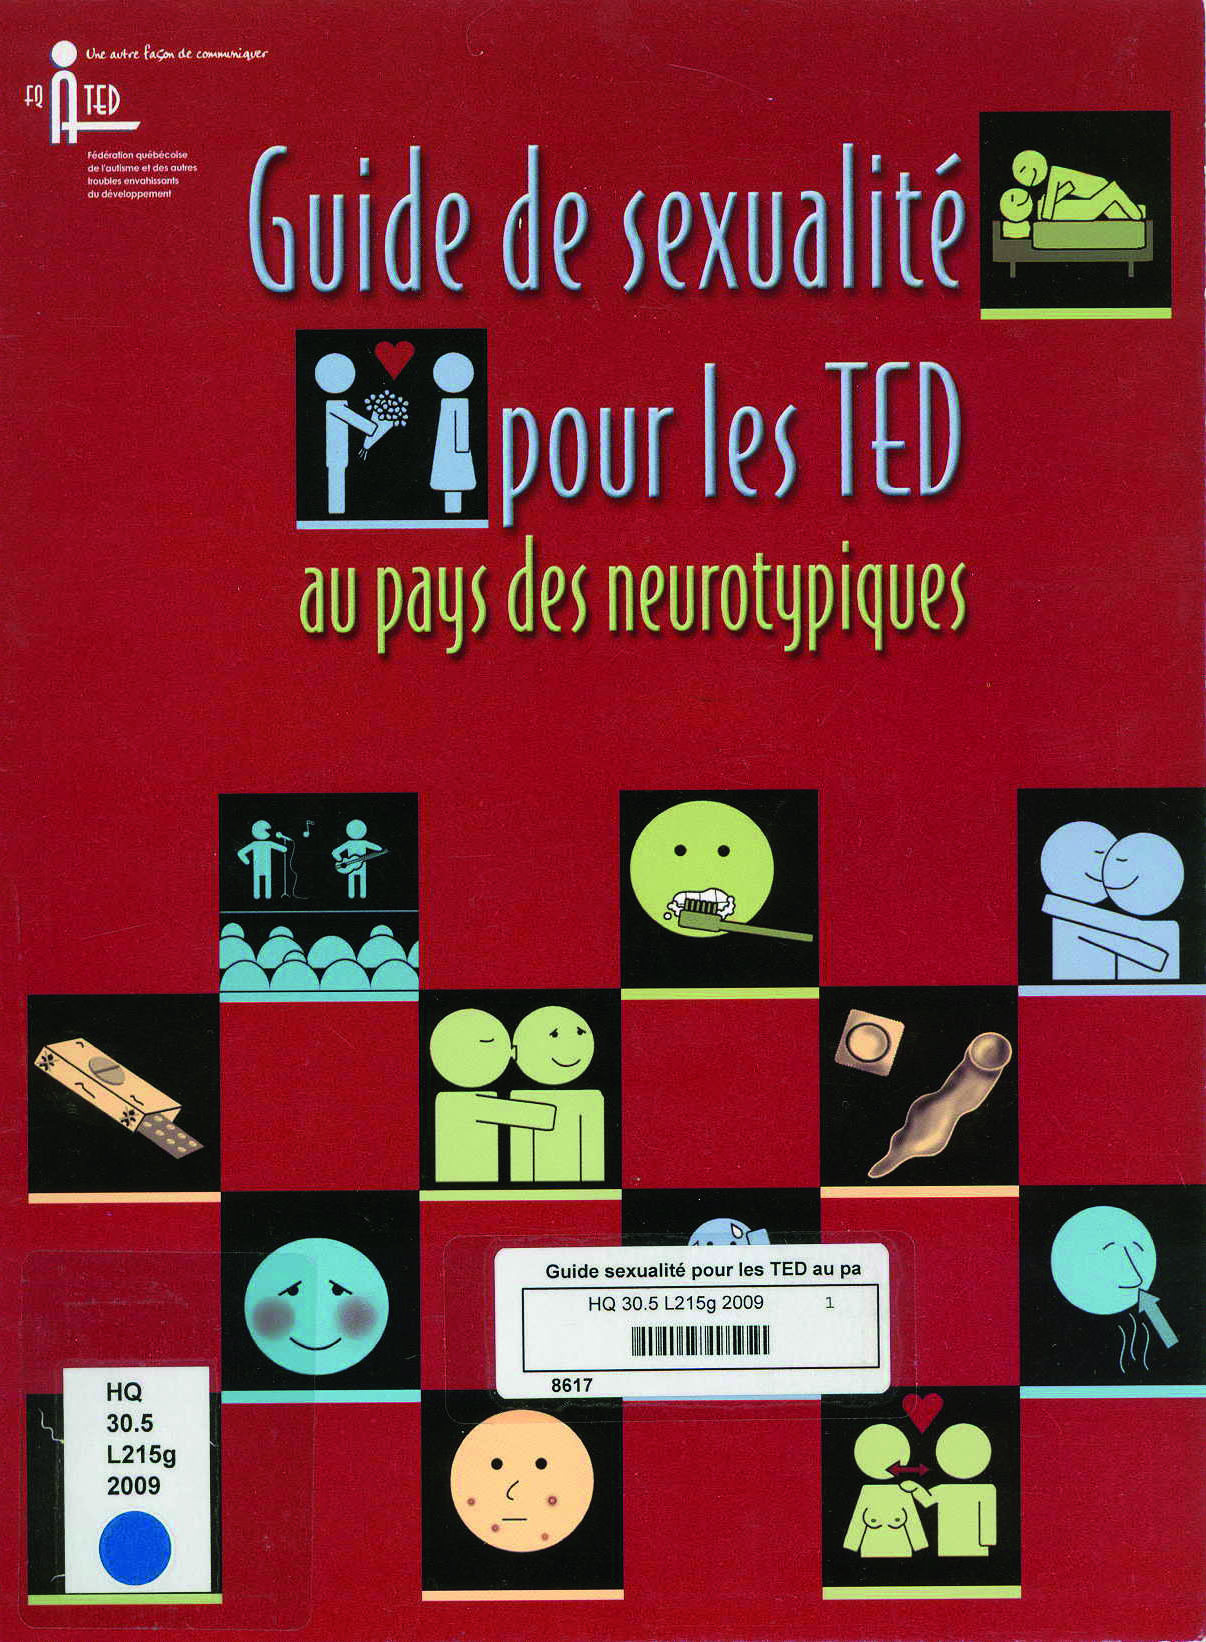 guide sexualite TED2